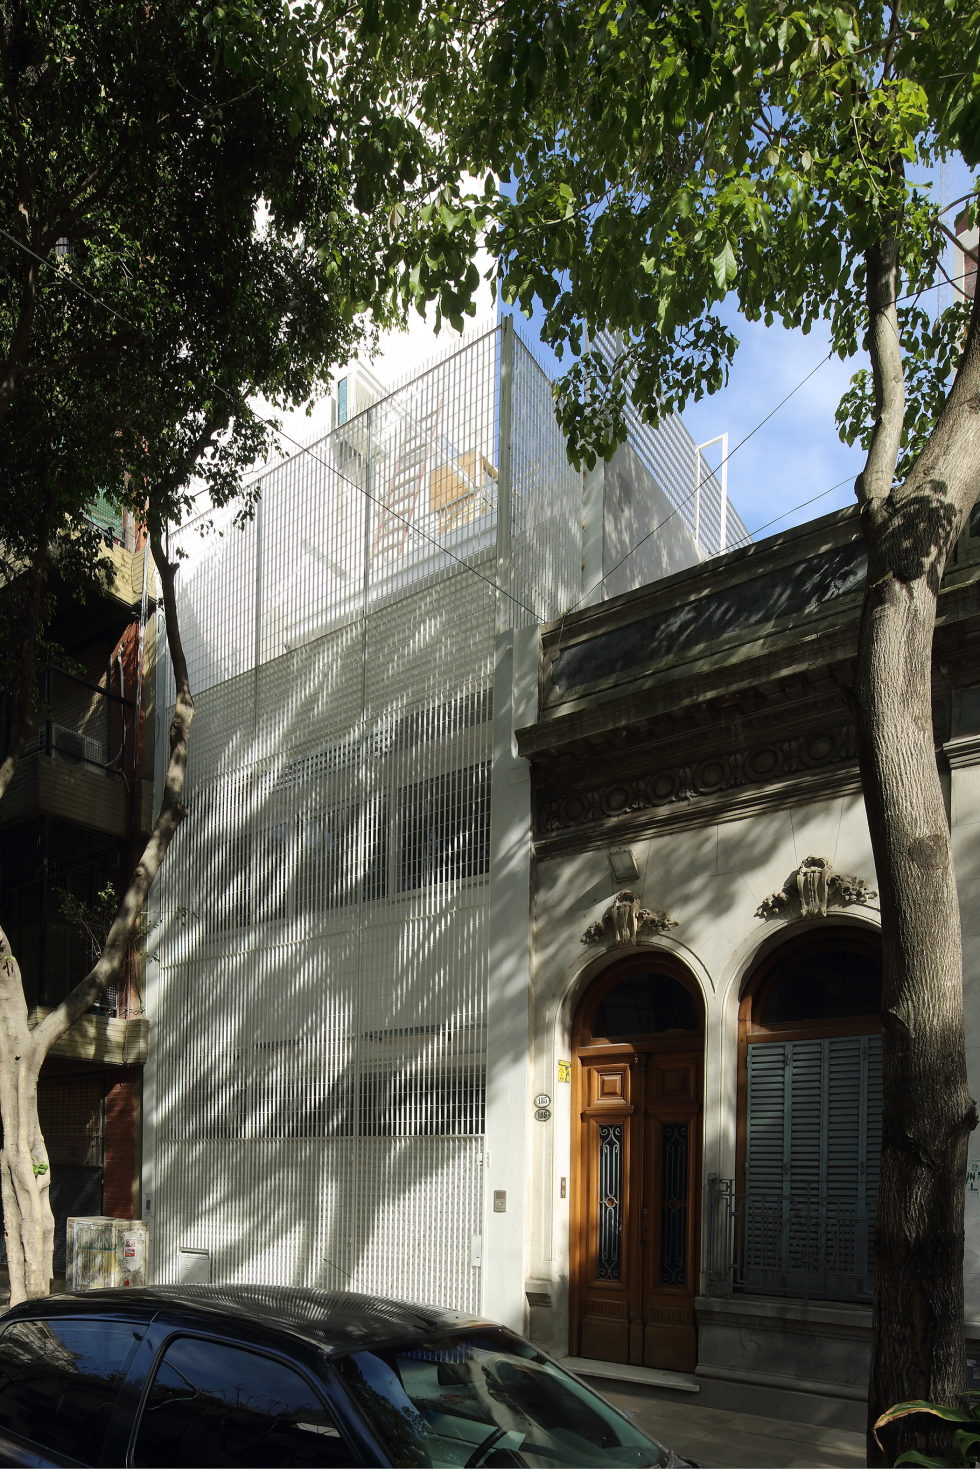 Jauretche House In Buenos Aires upon the project of Colle-Croce 2